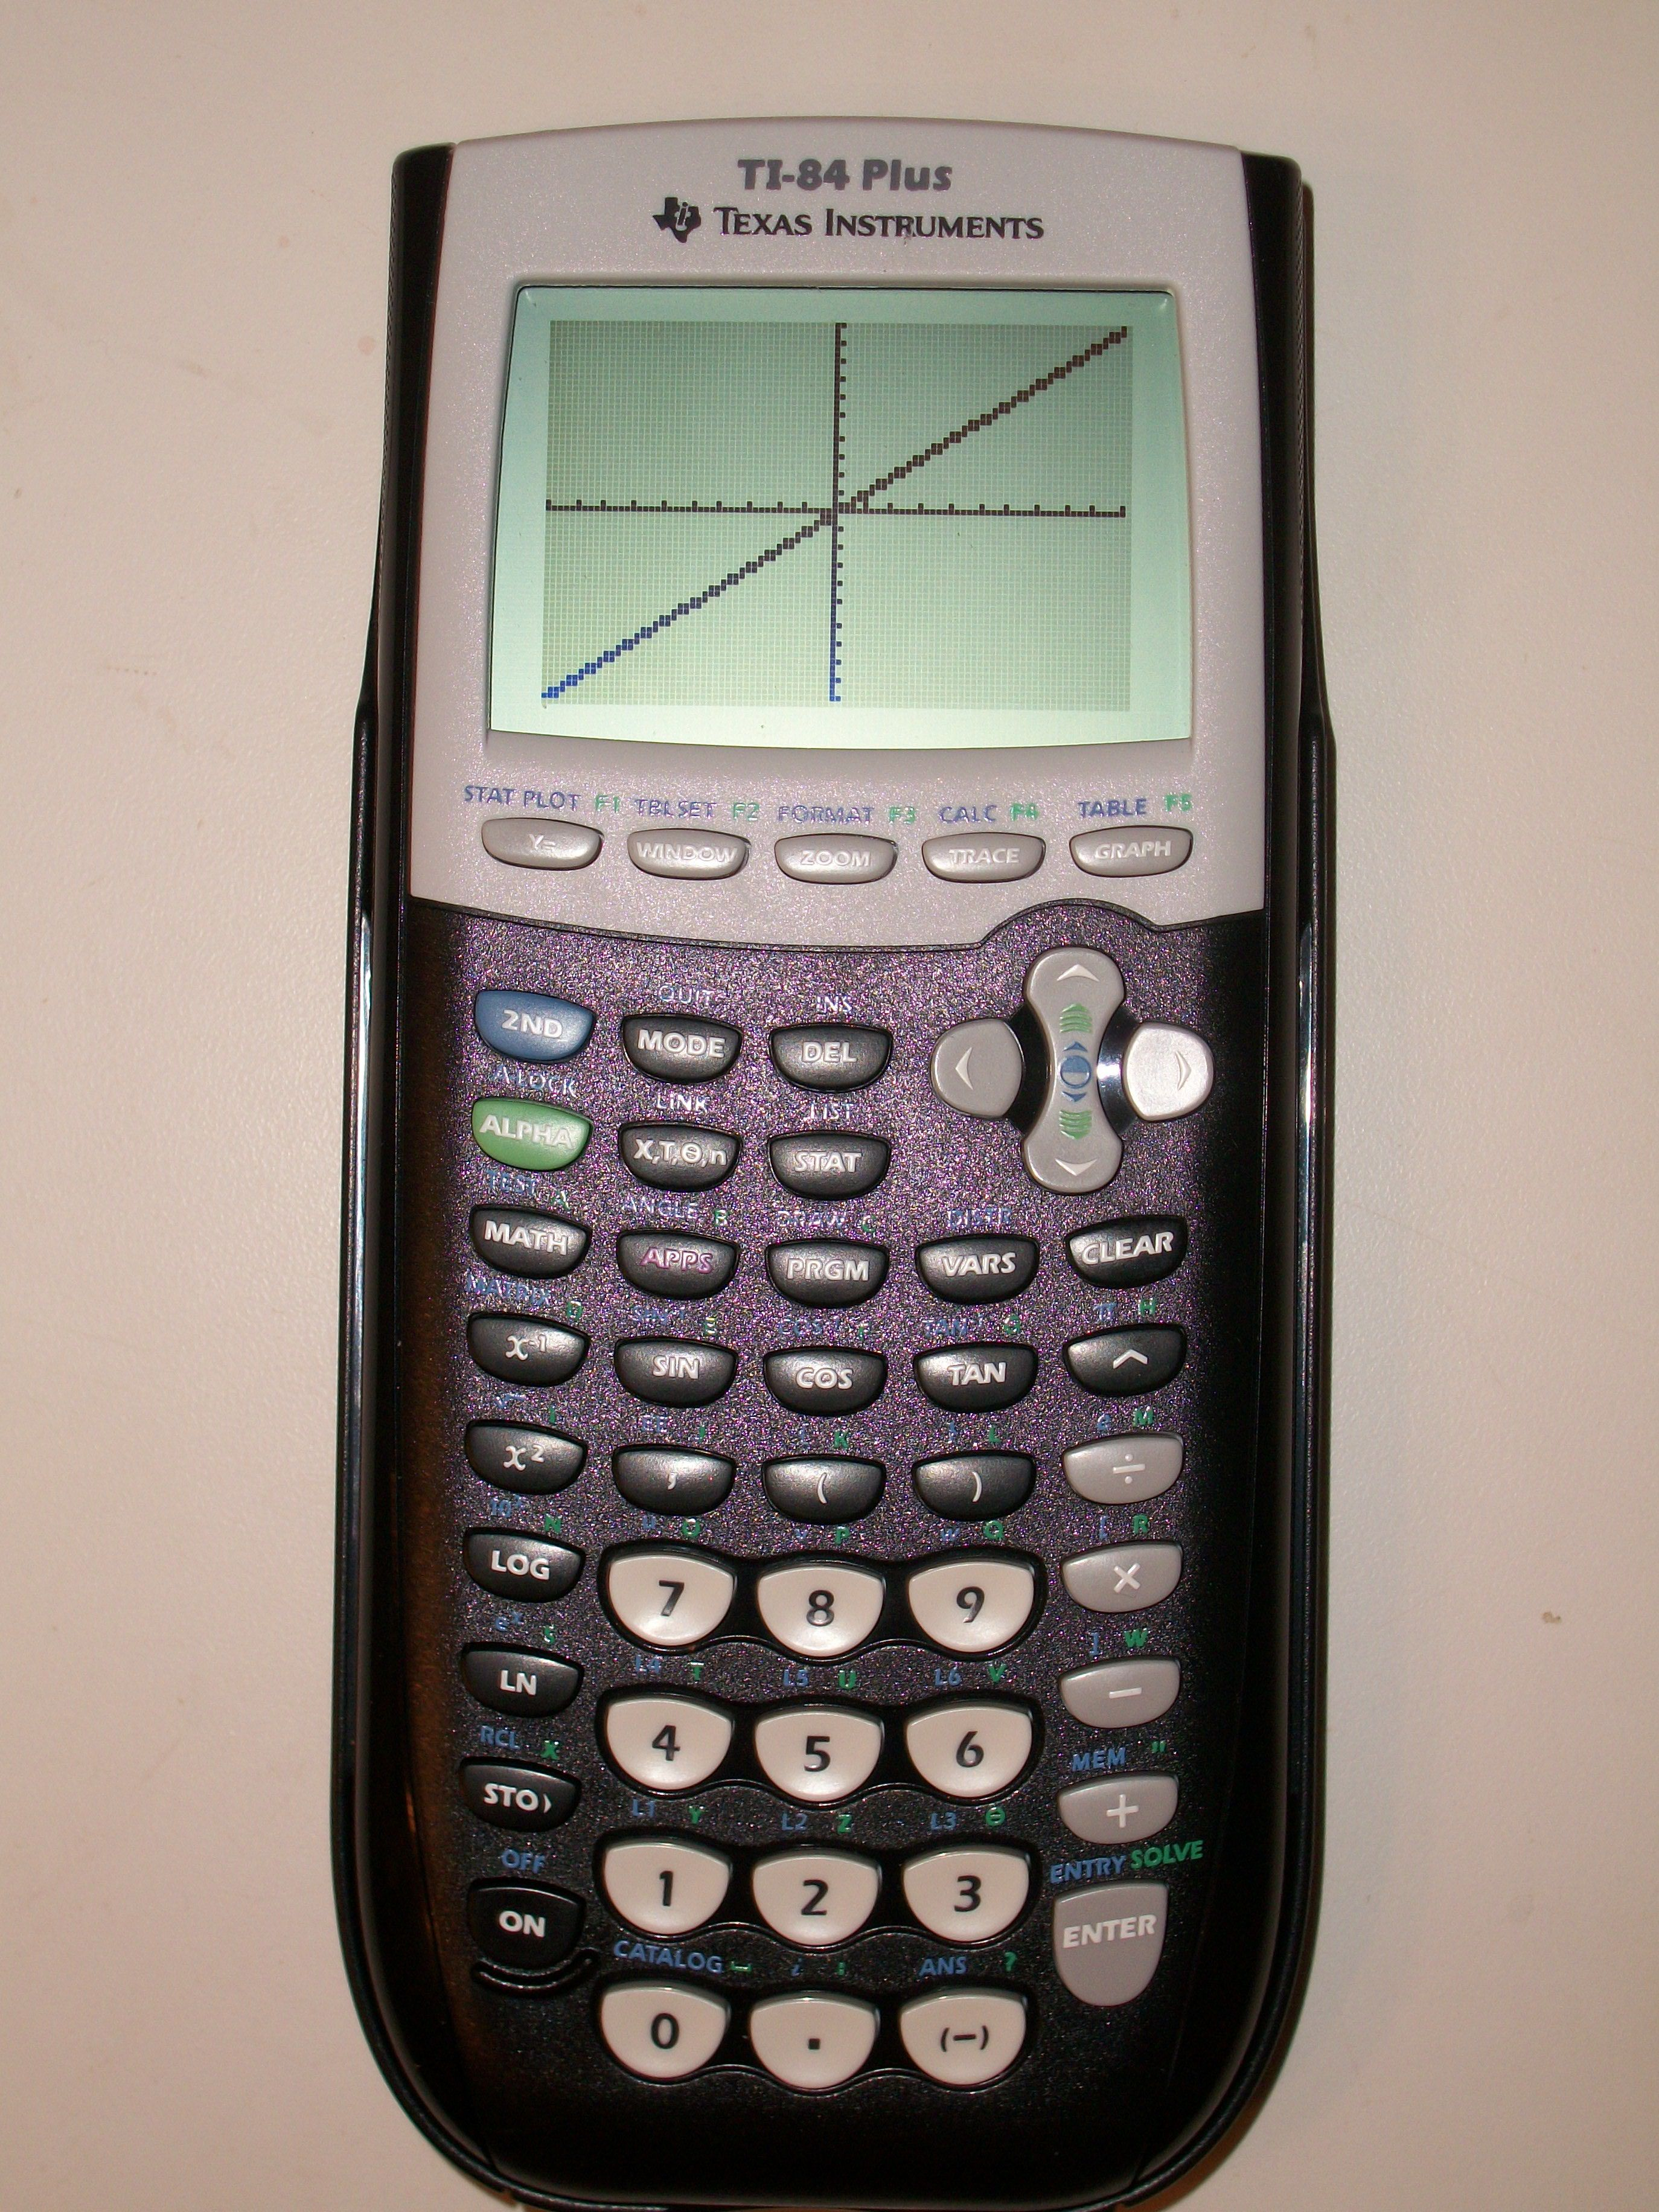 Graph by hand for understandinguse the calculator to